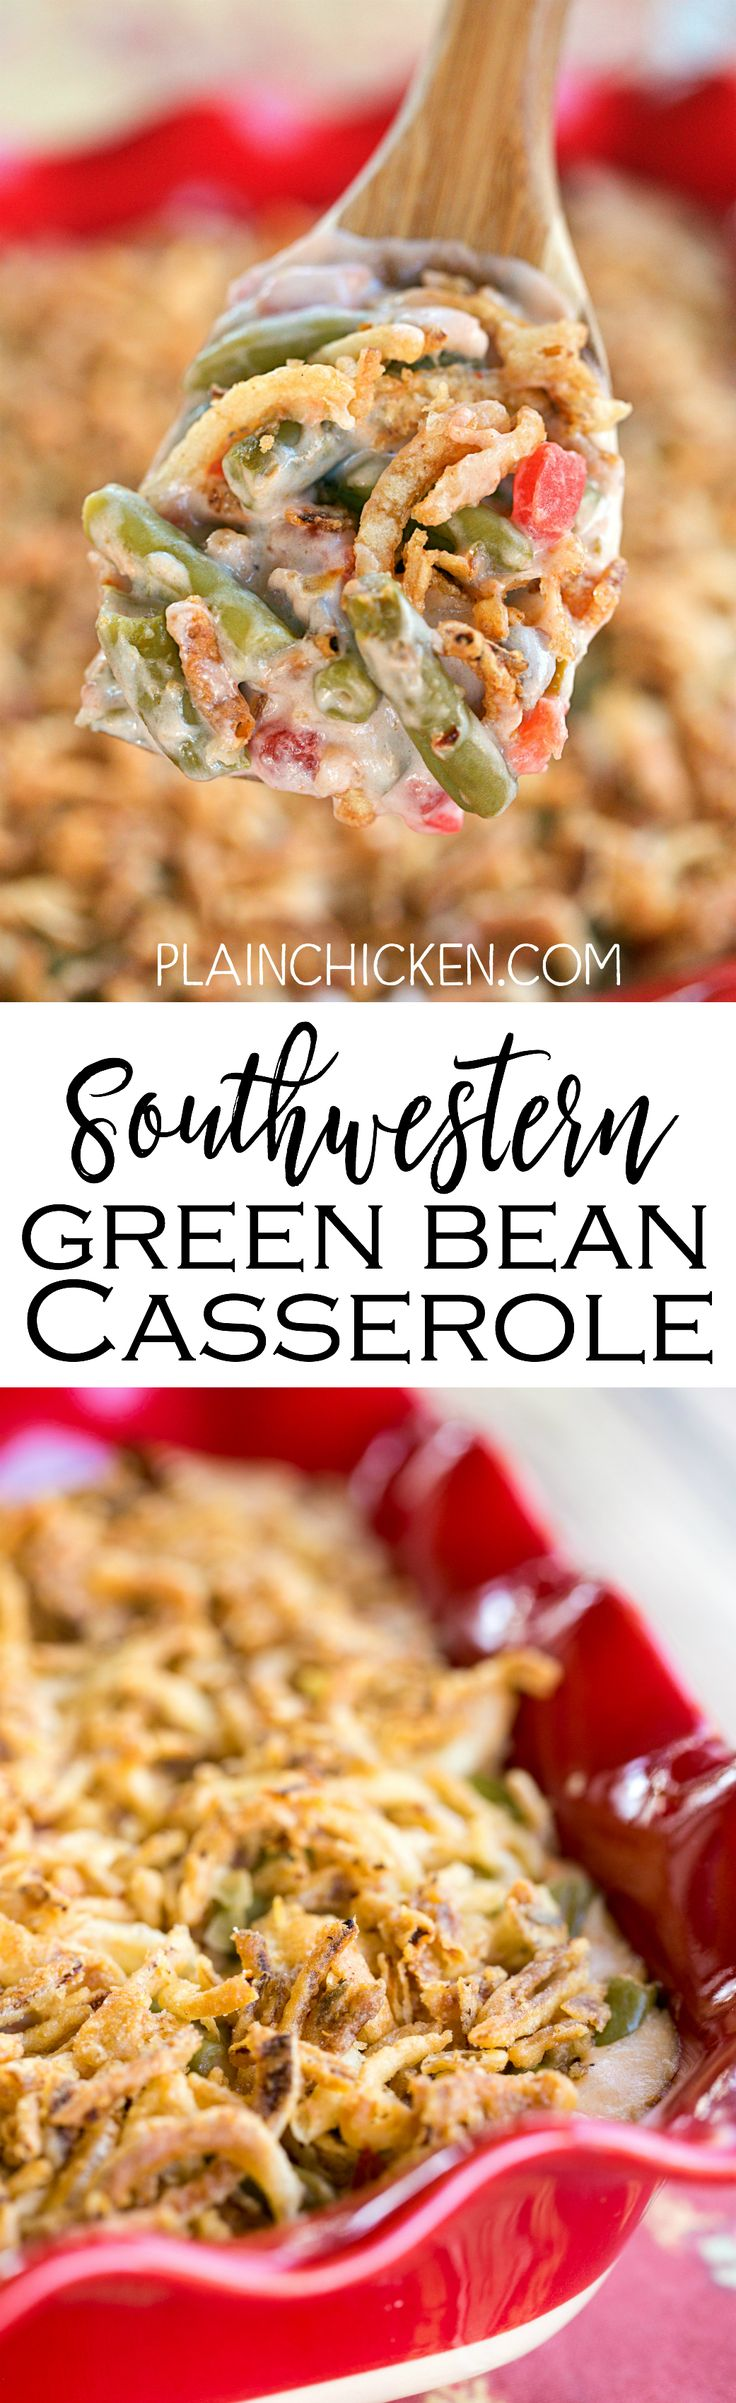 Southwestern Green Bean Casserole - perfect holiday side! Del Monte green beans, Cream of Mushroom soup, milk, soy sauce, Del Monte Diced Tomatoes and Green Chiles, French Fried Onions. Can make the day before and bake when ready to eat. LOVE this yummy side dish recipe!!